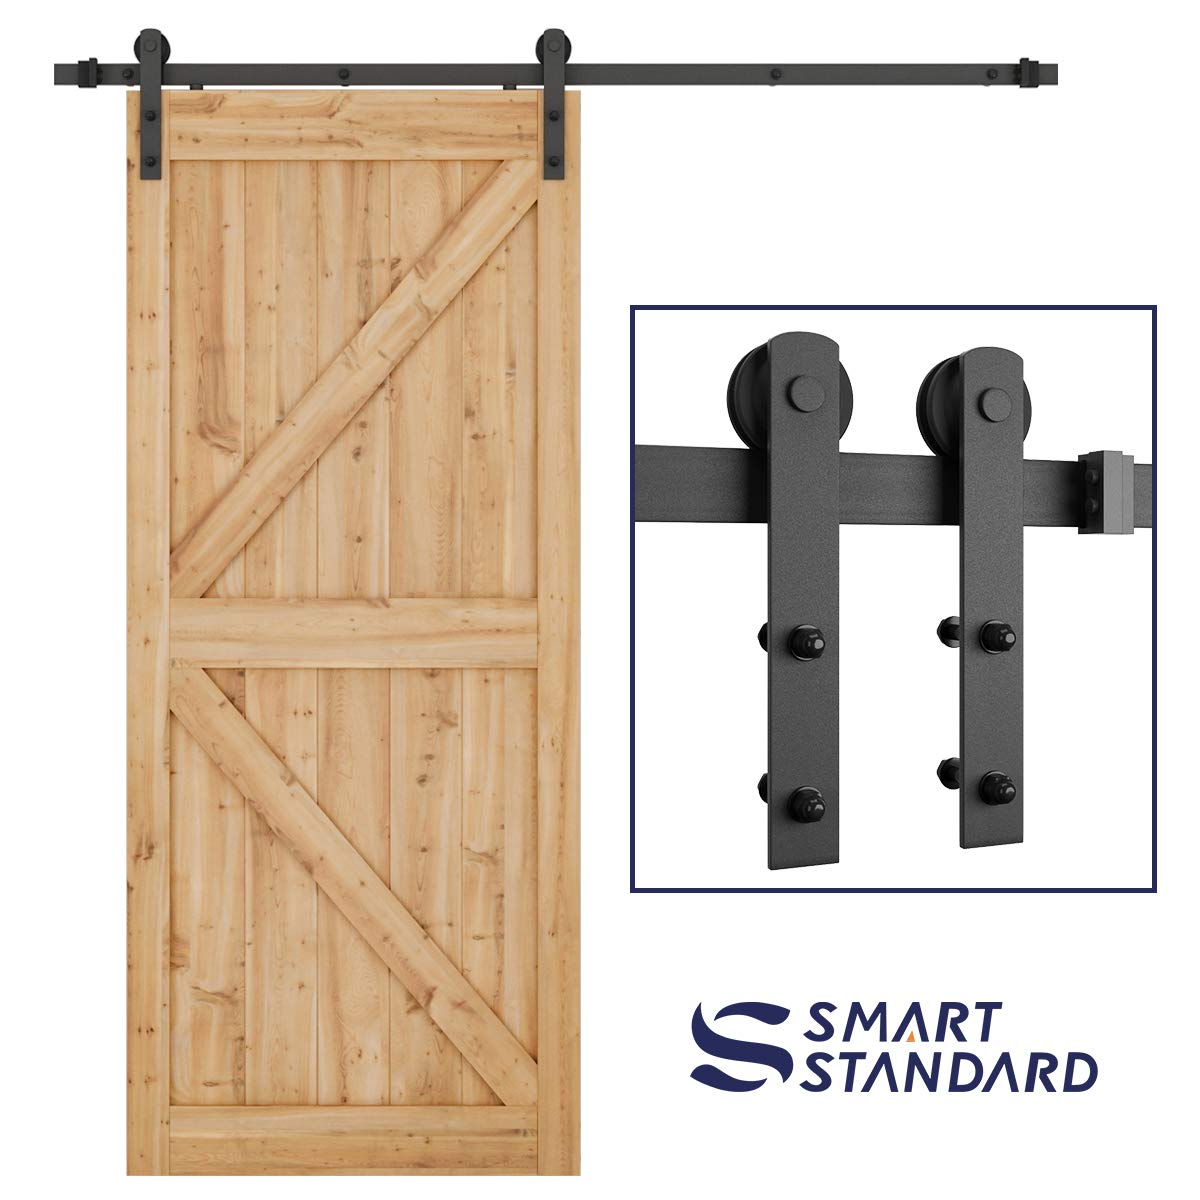 "SMARTSTANDARD 6.6ft Heavy Duty Sturdy Sliding Barn Door Hardware Kit -Smoothly and Quietly -Easy to install -Includes Step-By-Step Installation Instruction Fit 36""-40"" Wide Door Panel (I Shape Hanger)"